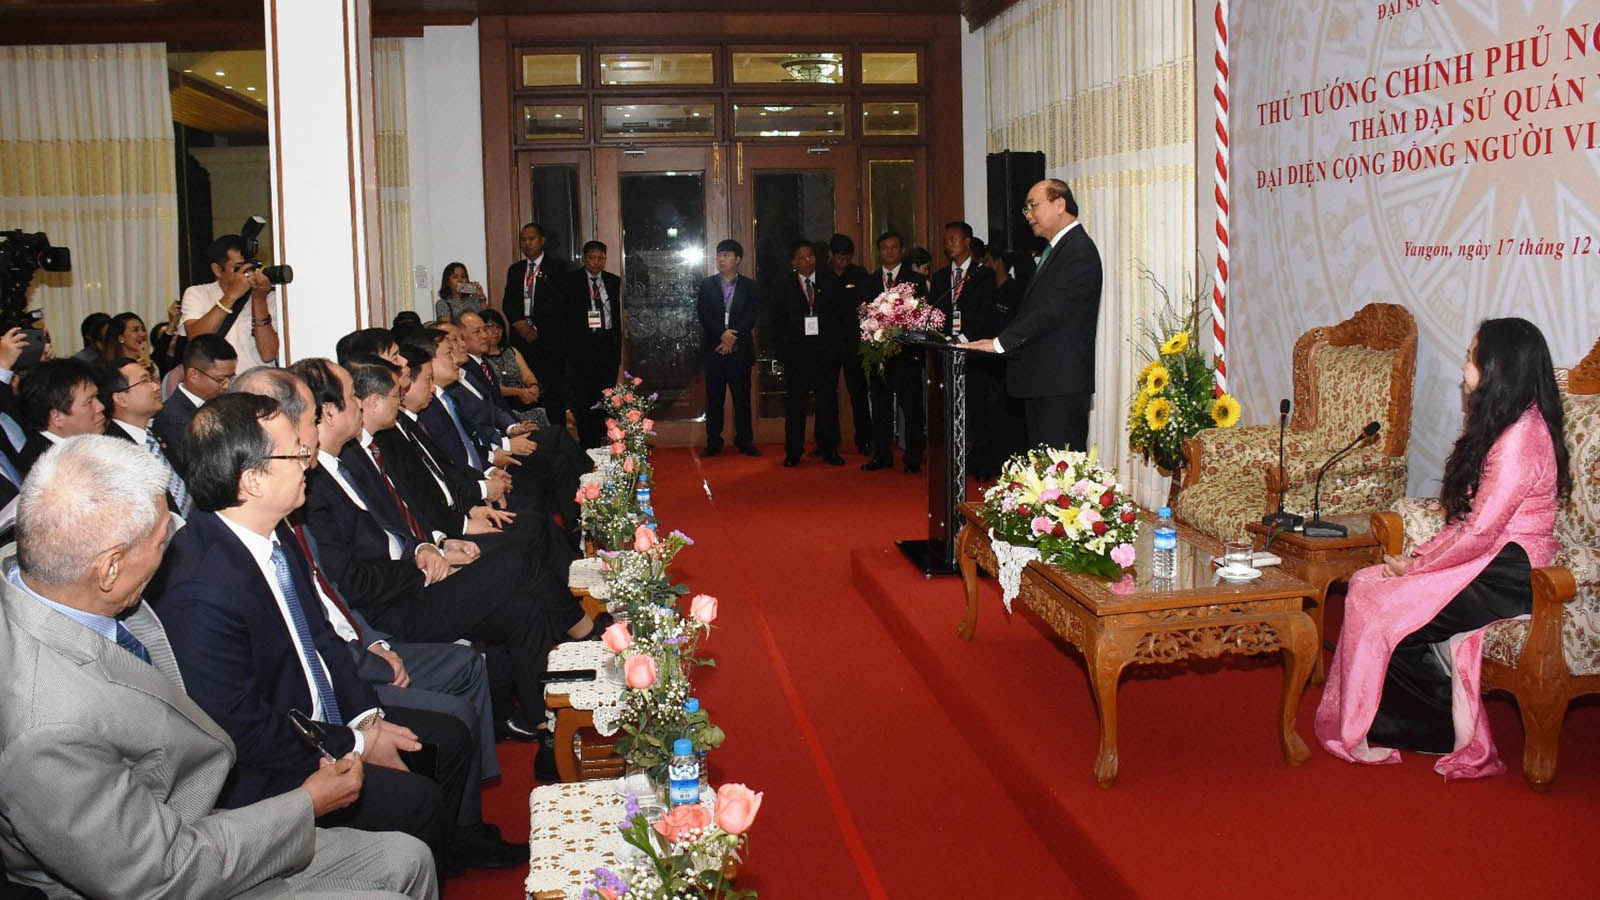 Prime Minister Nguyen Xuan Phuc of the Socialist Republic of Viet Nam delivers the speech at the Vietnamese Embassy in Myanmar yesterday. Photo: MNA